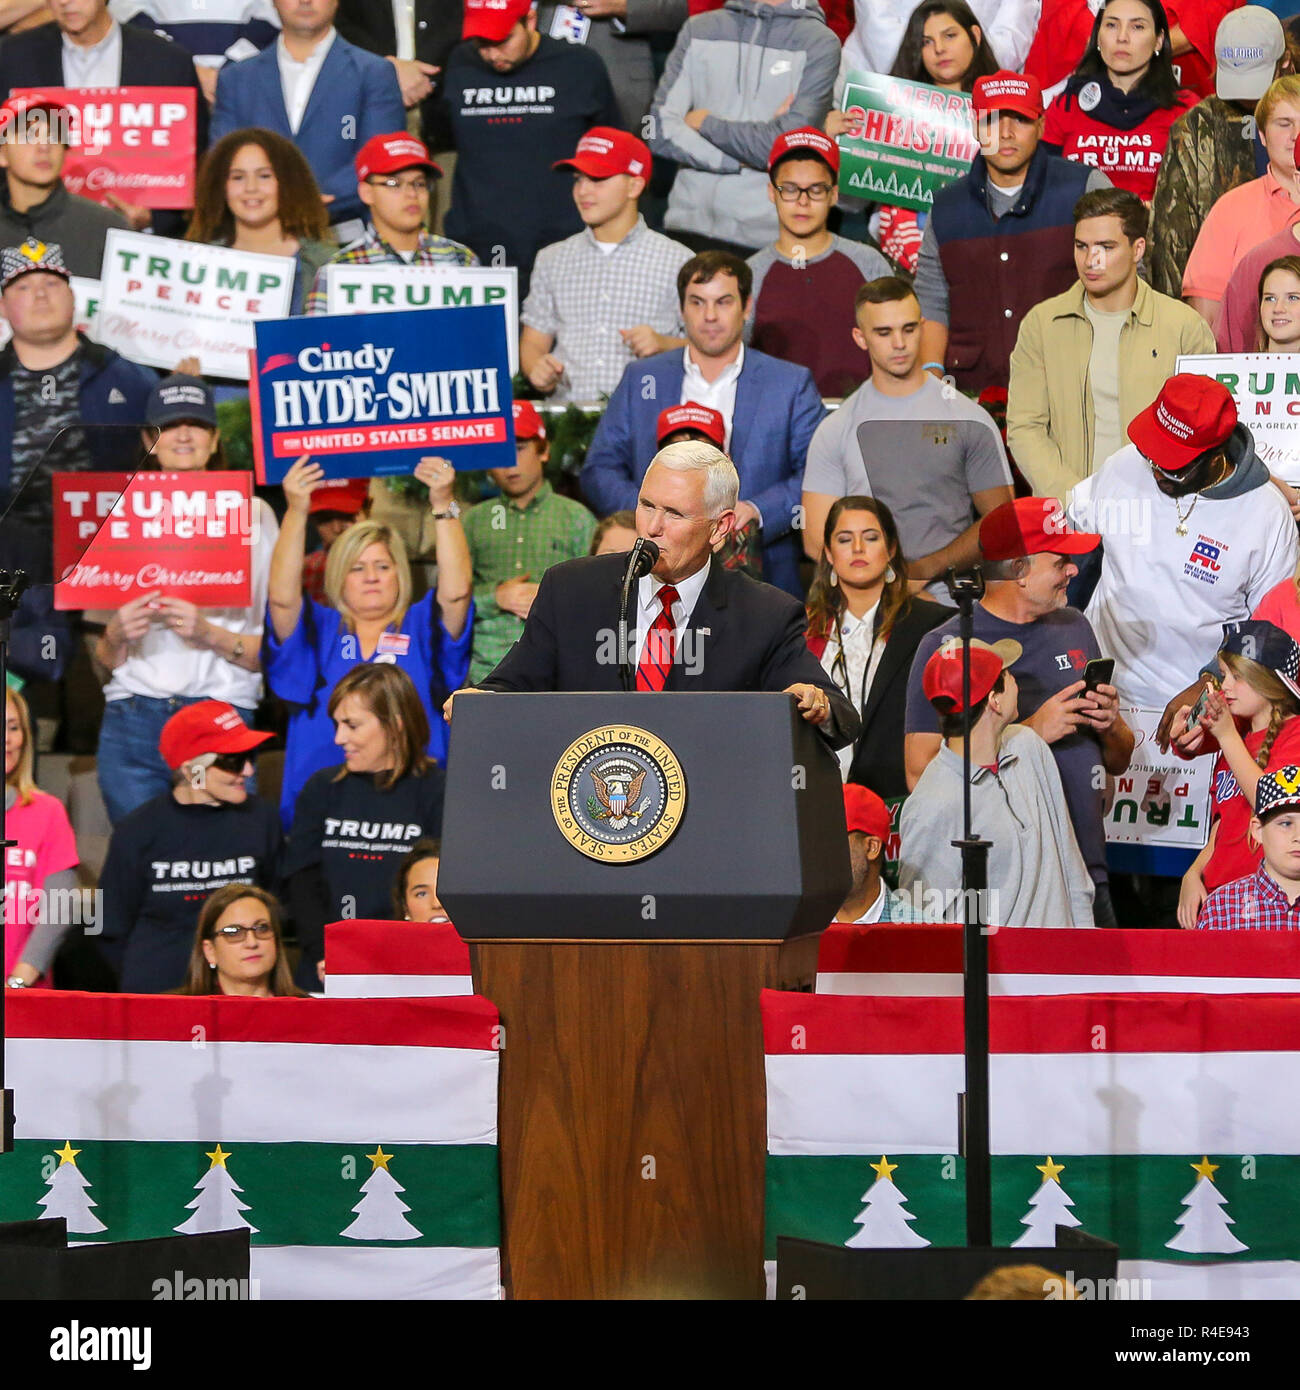 Biloxi, Mississippi, USA. 26th Nov 2018. U.S Vice President Mike Pence speaks at a rally Biloxi Mississippi and spoke before introducing U.S. President Donald Trump.  The President and Vice President  both spoke and showing their support for  GOP Sen. Cindy Hyde-Smith who is in a run-off with Democrat Mike Espy. Pence was also to participate in the round table First Step Act which a bipartisan criminal justice legislation. Credit: Tom Pumphret/Alamy Live News - Stock Image